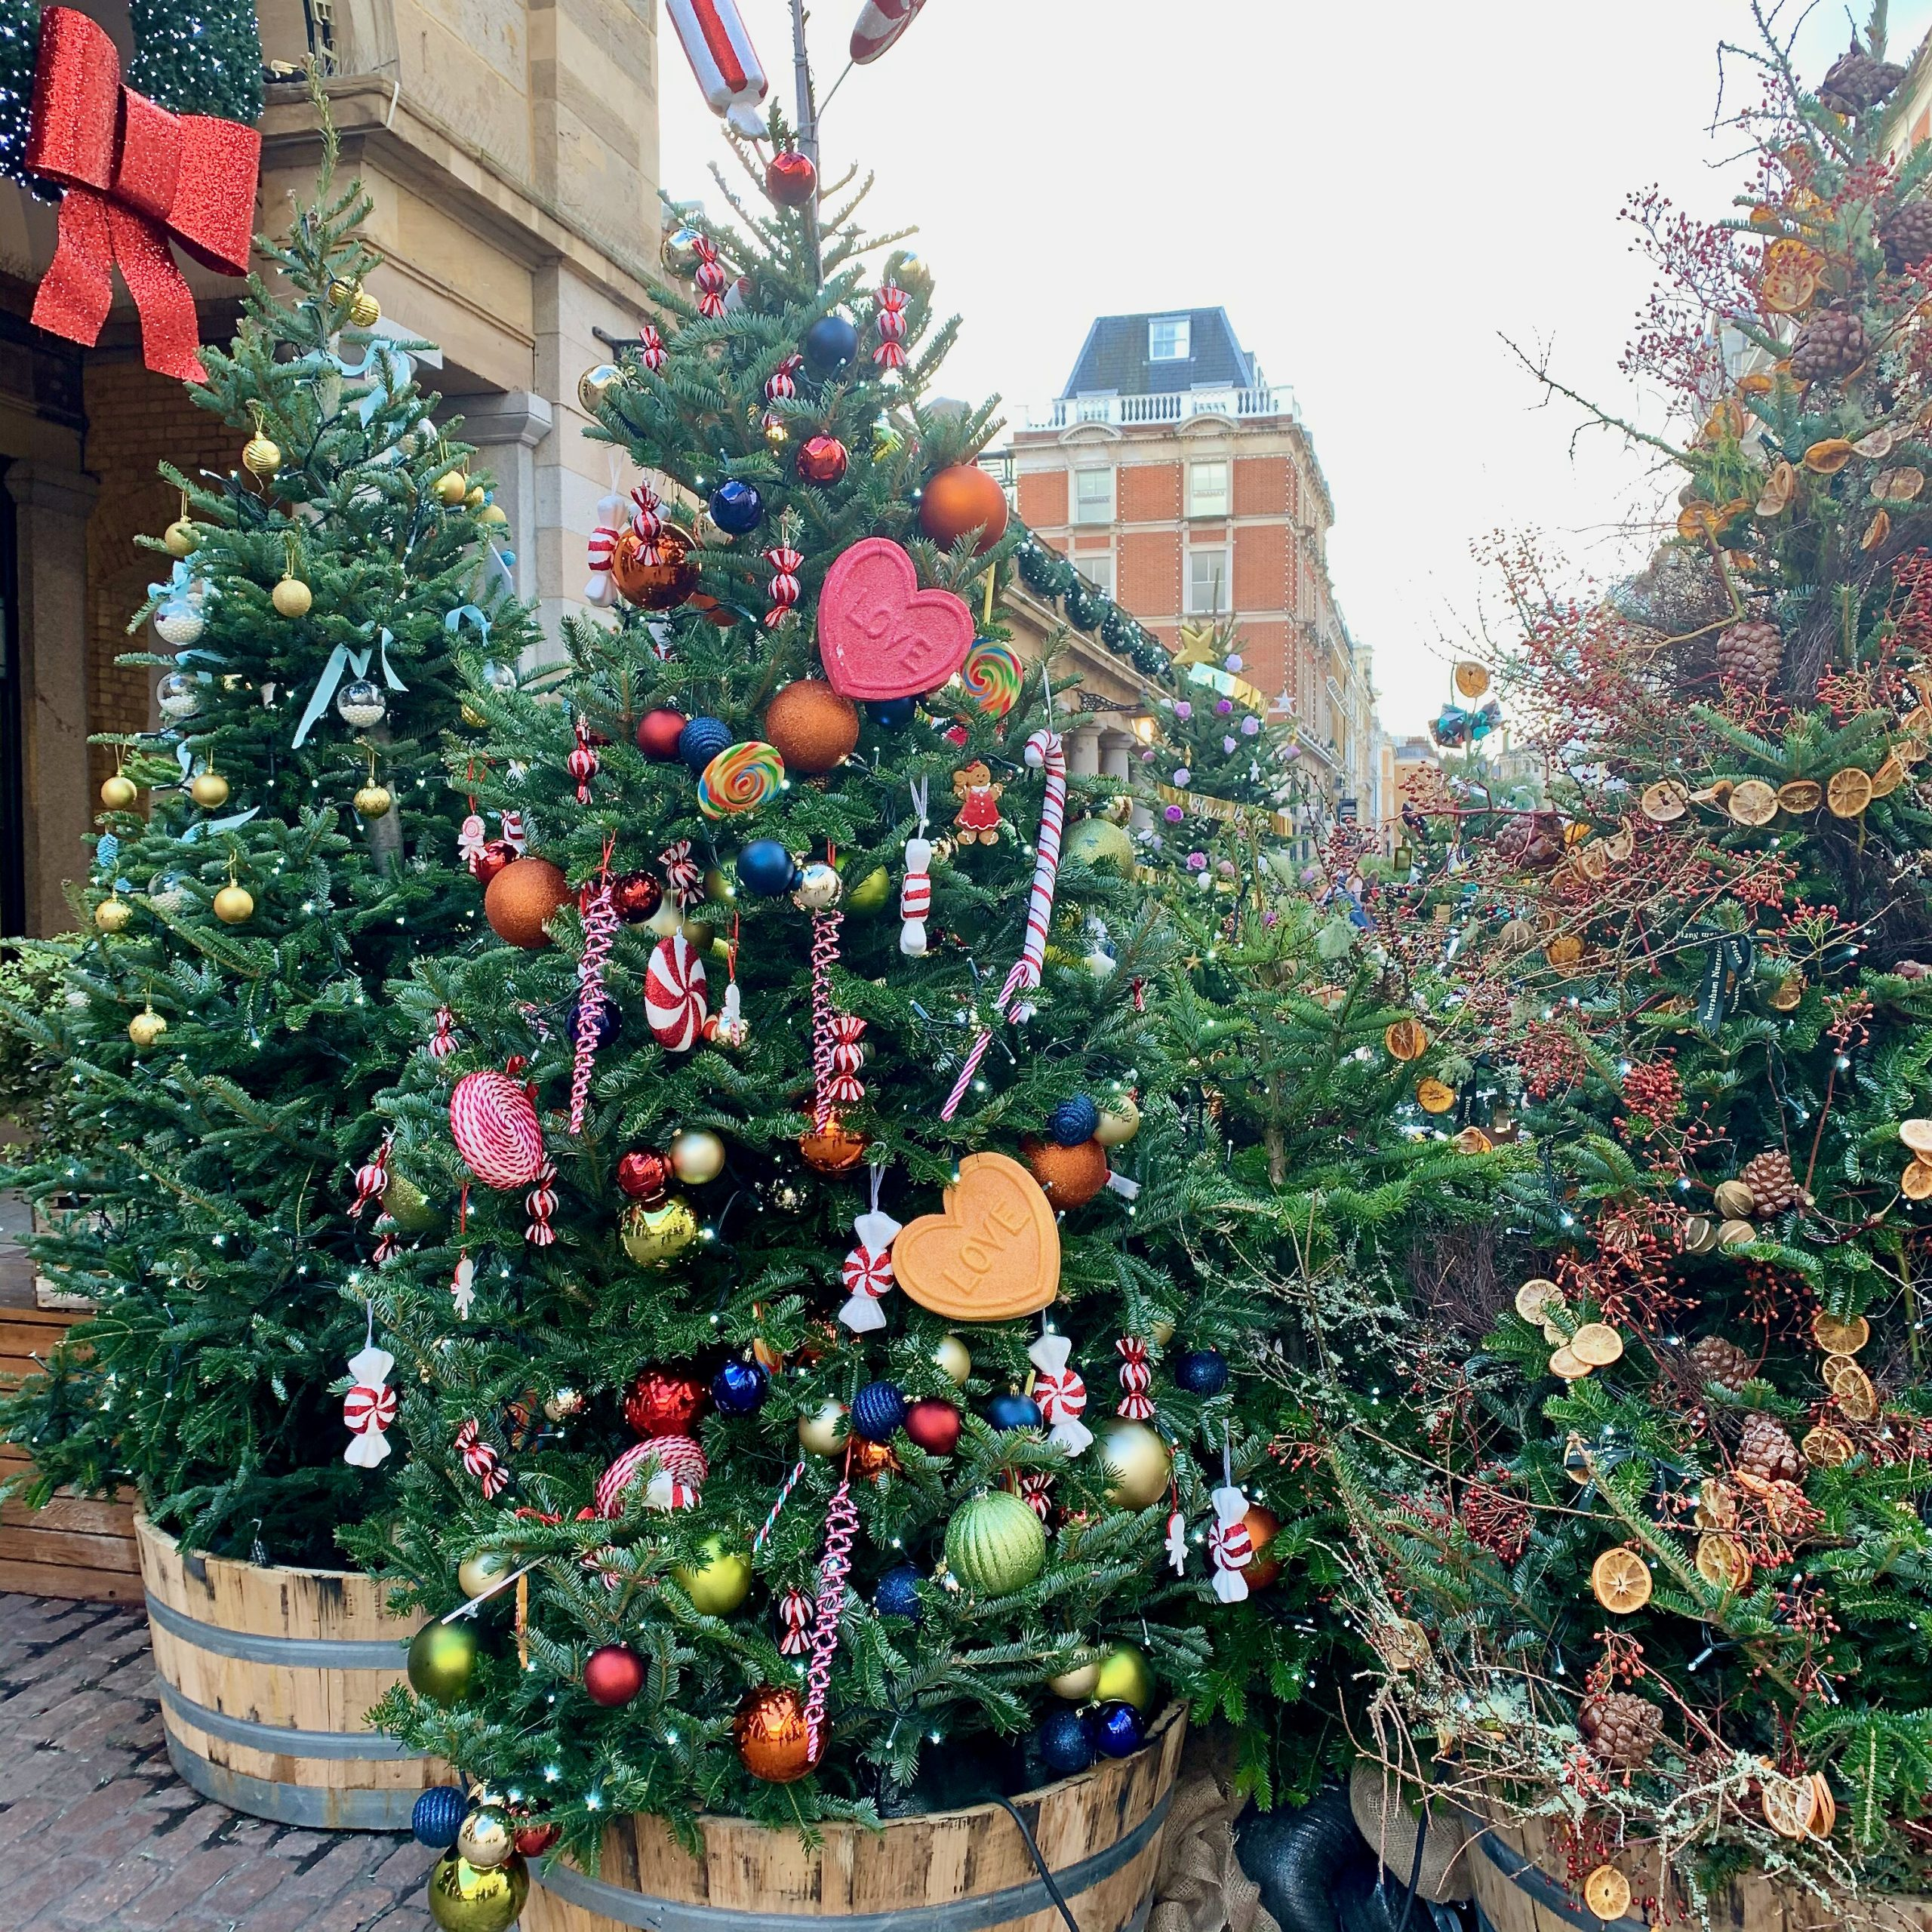 Covent Garden Christmas Trees